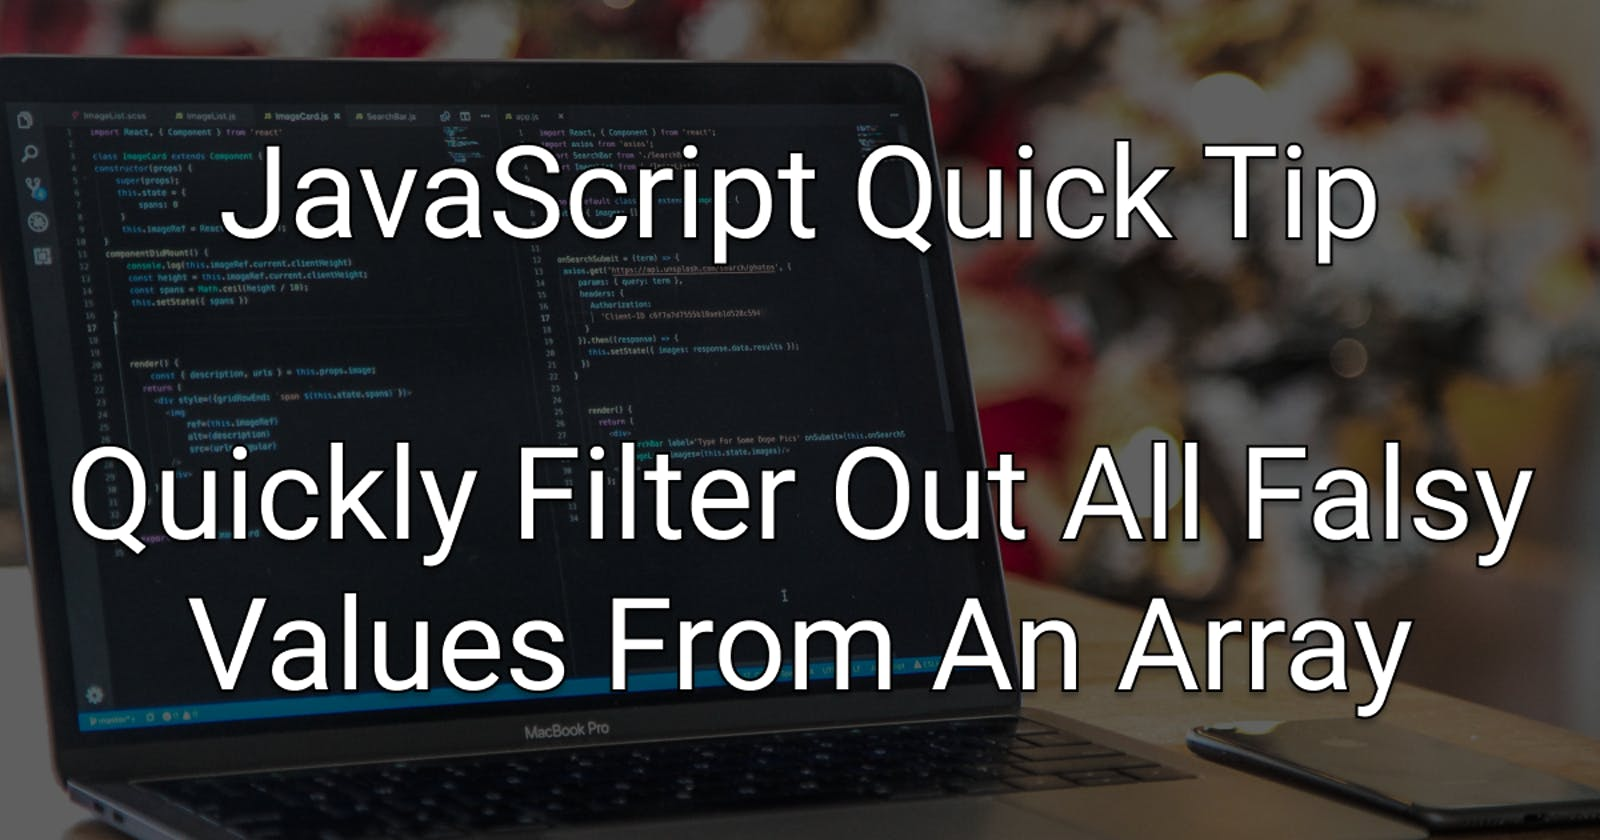 JavaScript Quick Tip: Quickly Filter Out All Falsy Values From An Array